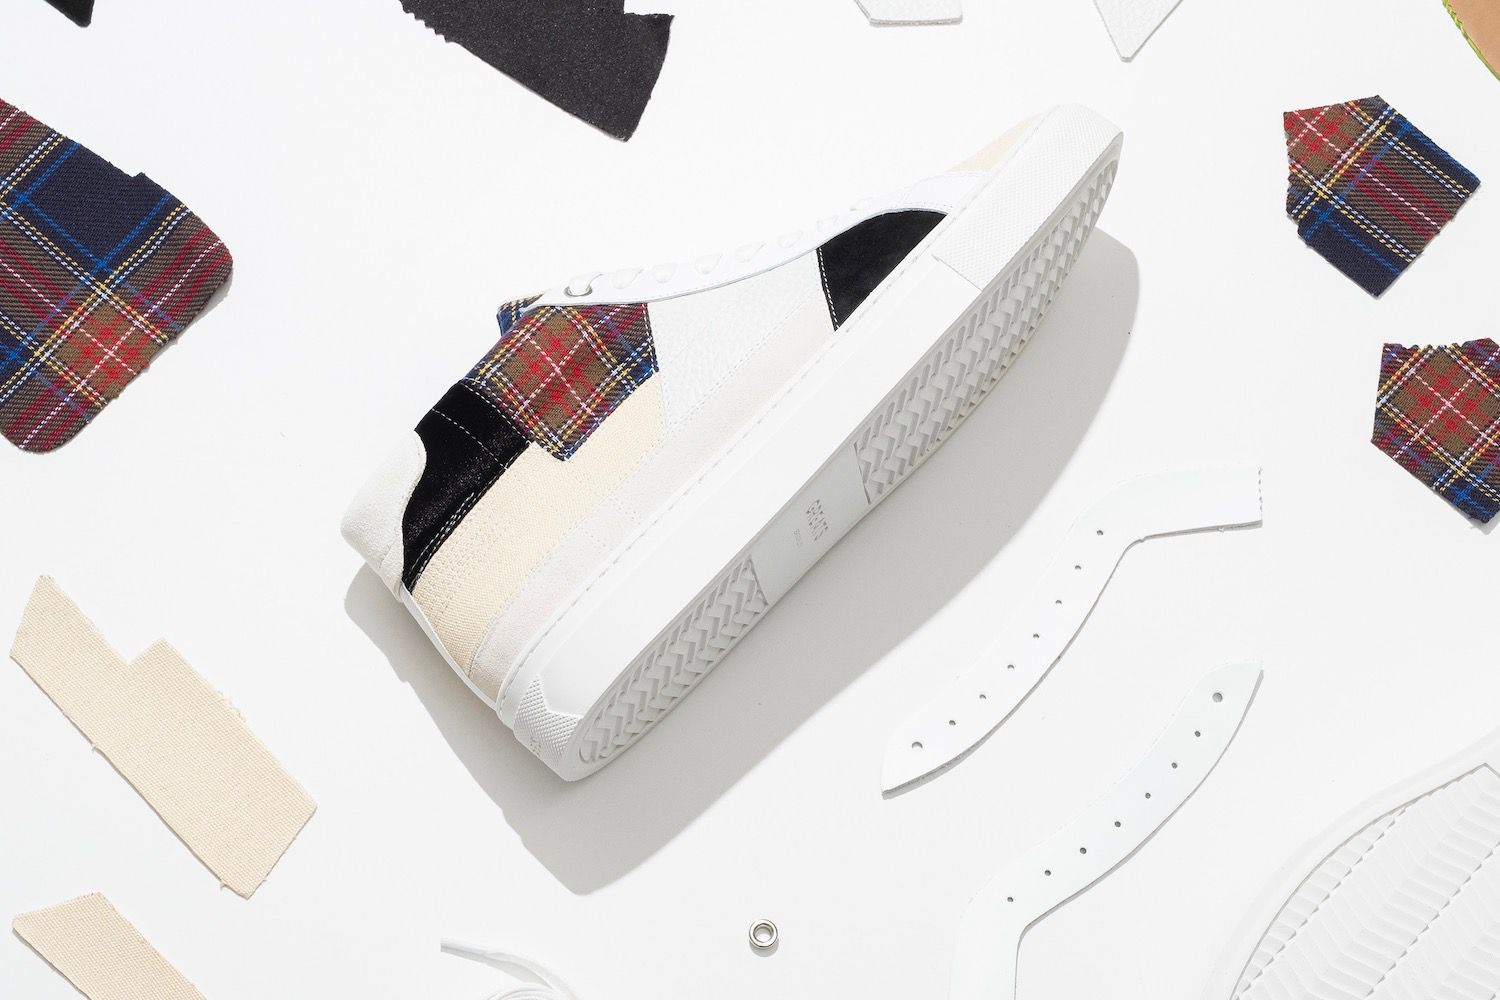 Greats Royale High Patchwork shoe